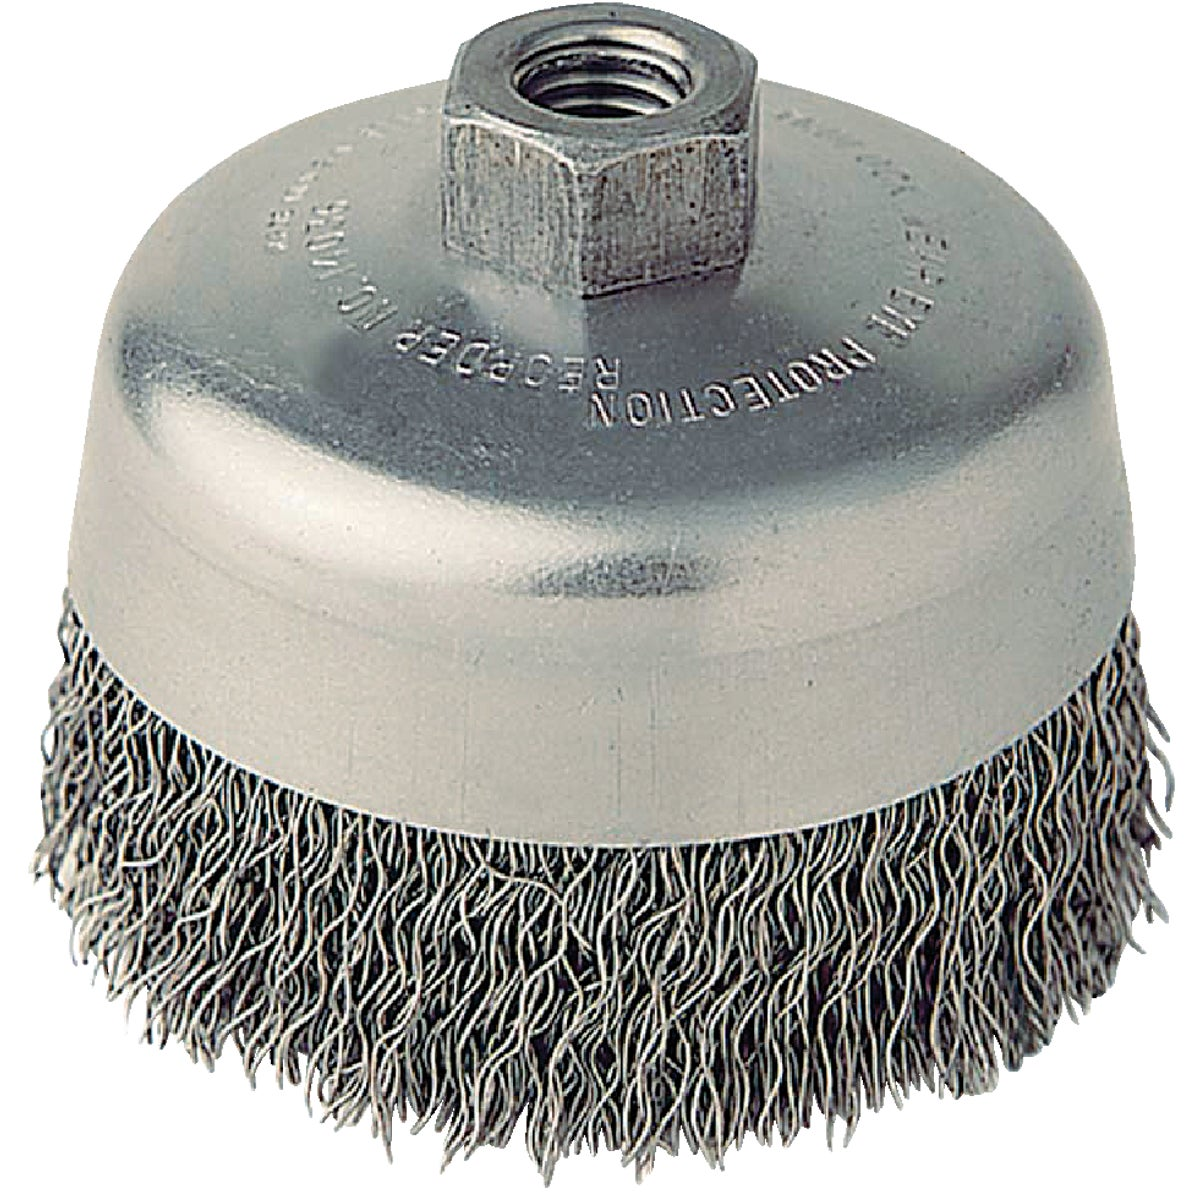 "5"".020 WIRE CUP BRUSH - 36061 by Weiler Corporation"